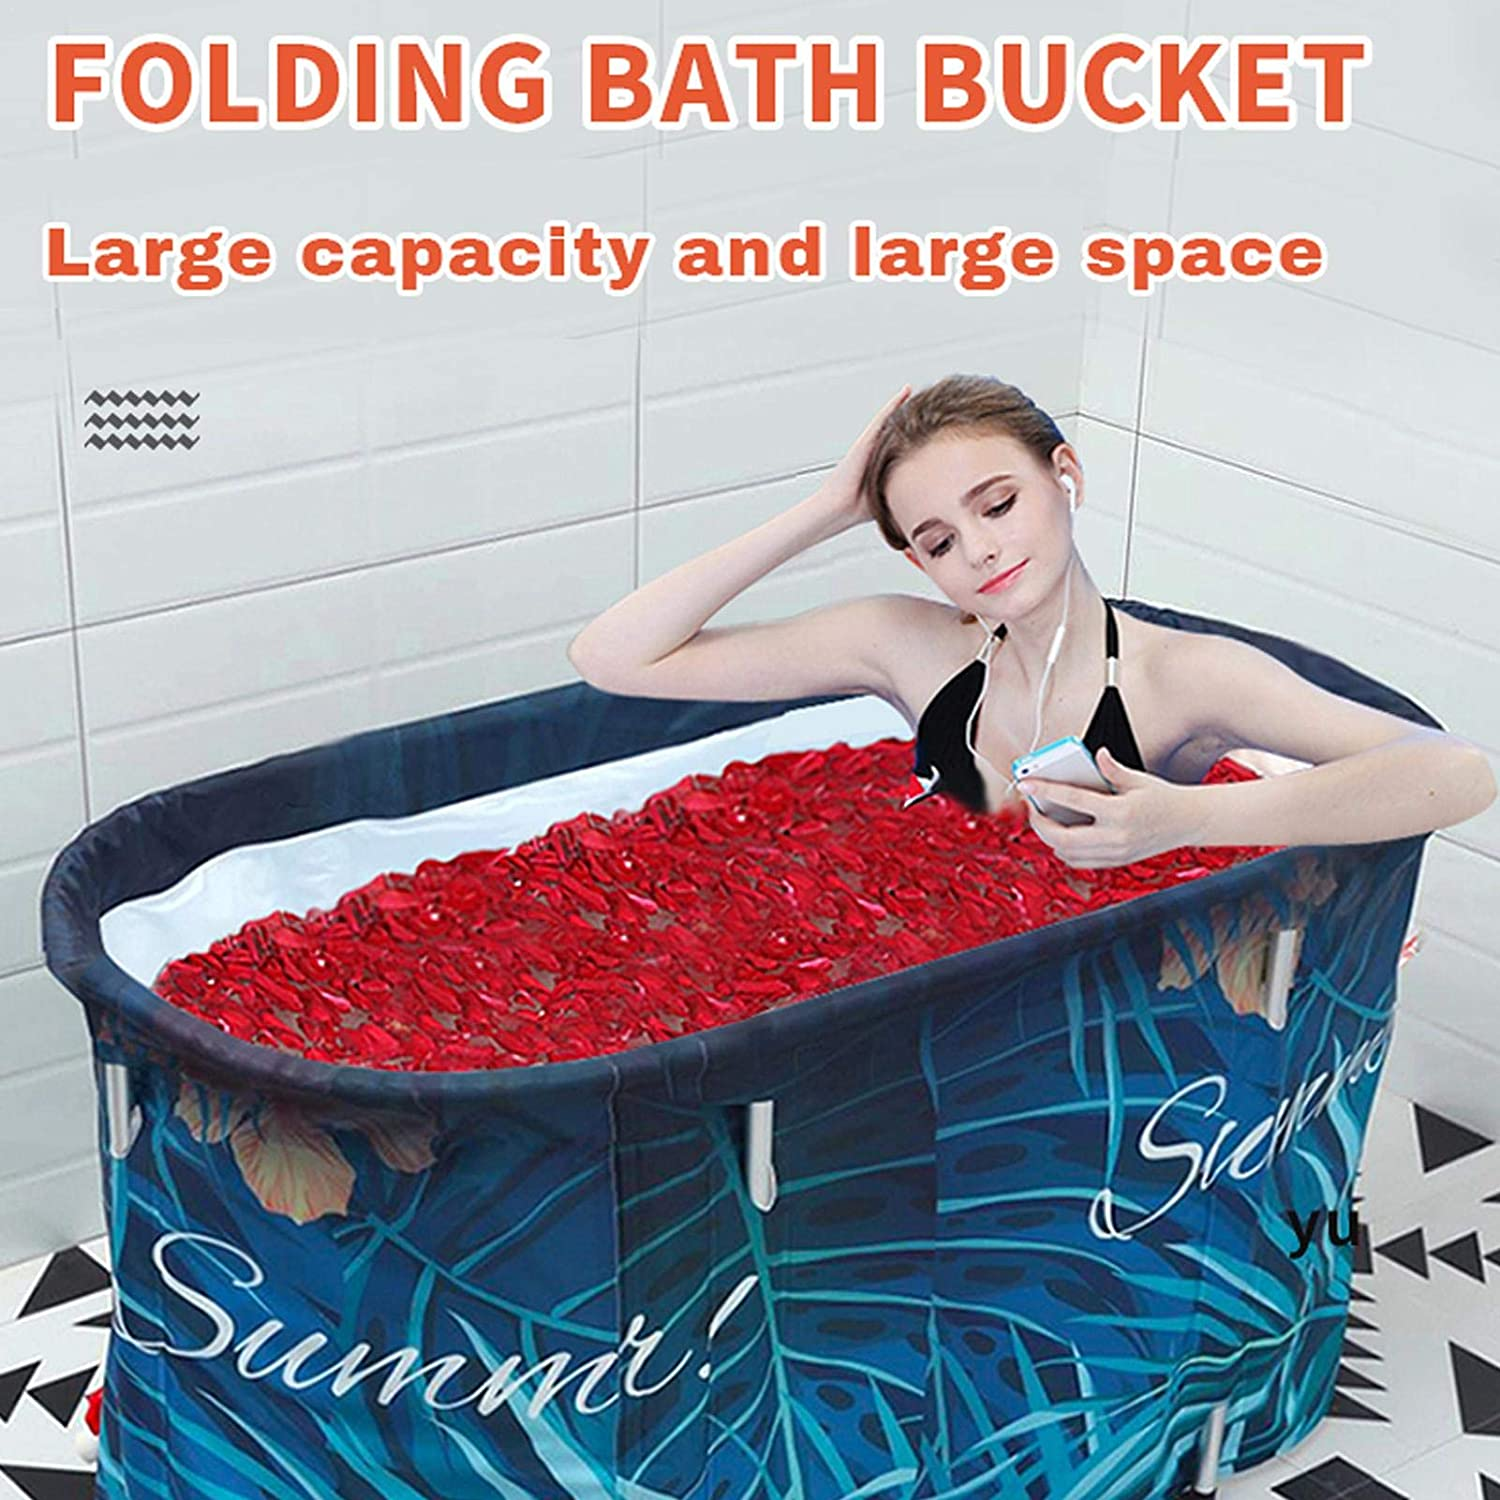 Interesty Portable Bathtub Folding Bathtub for Adults Foldable Children Tub Household Bath Basin Constant Temperature with Cover